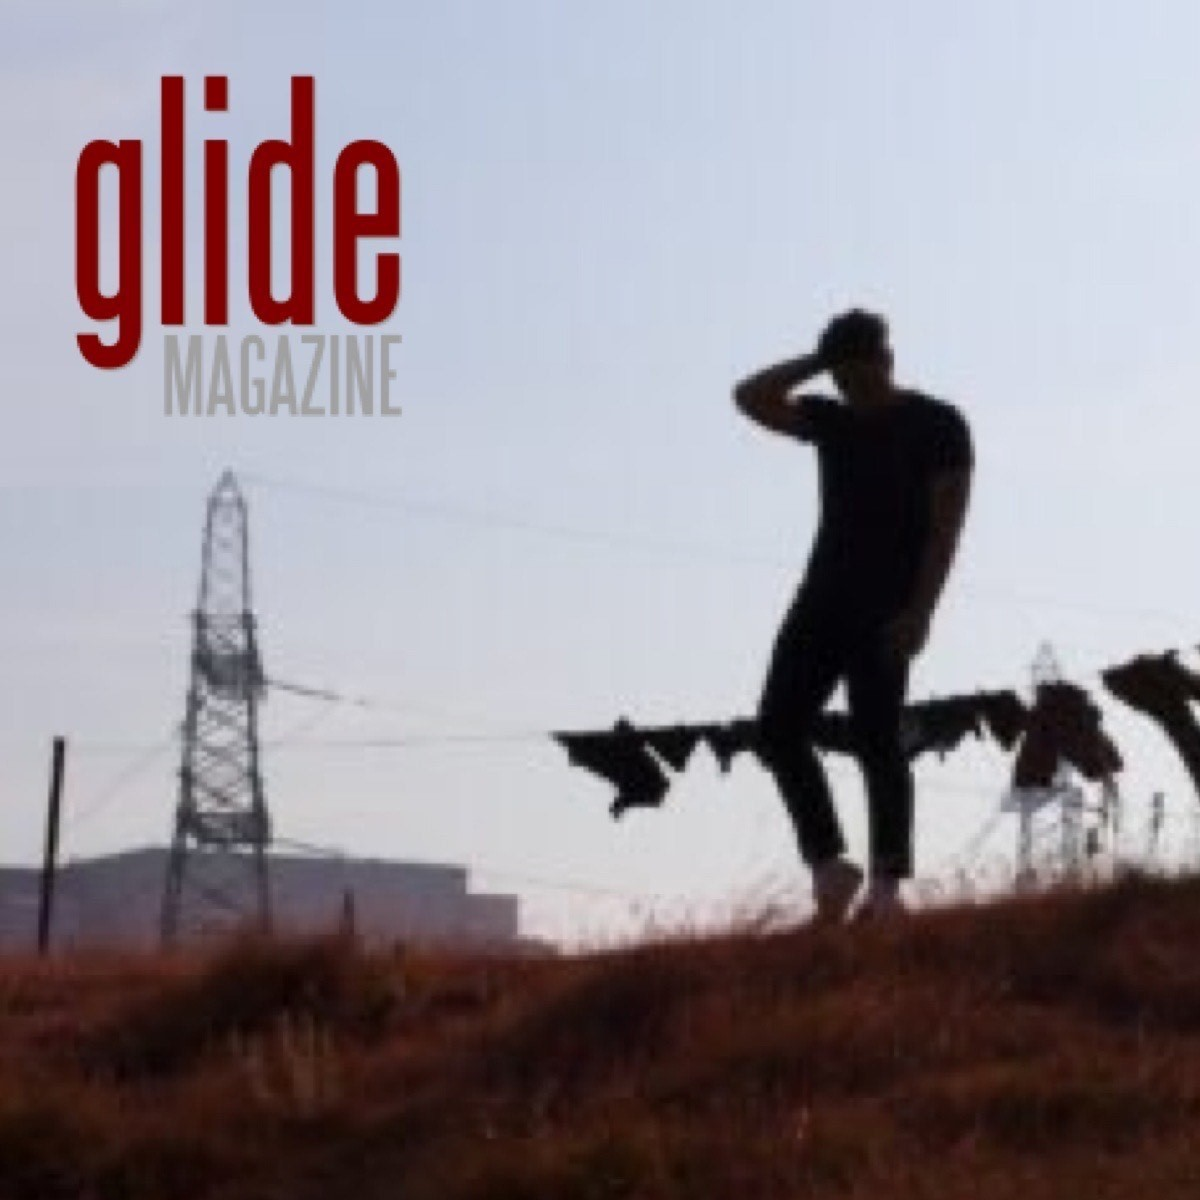 Articlehome oliver spaling gilde magazine